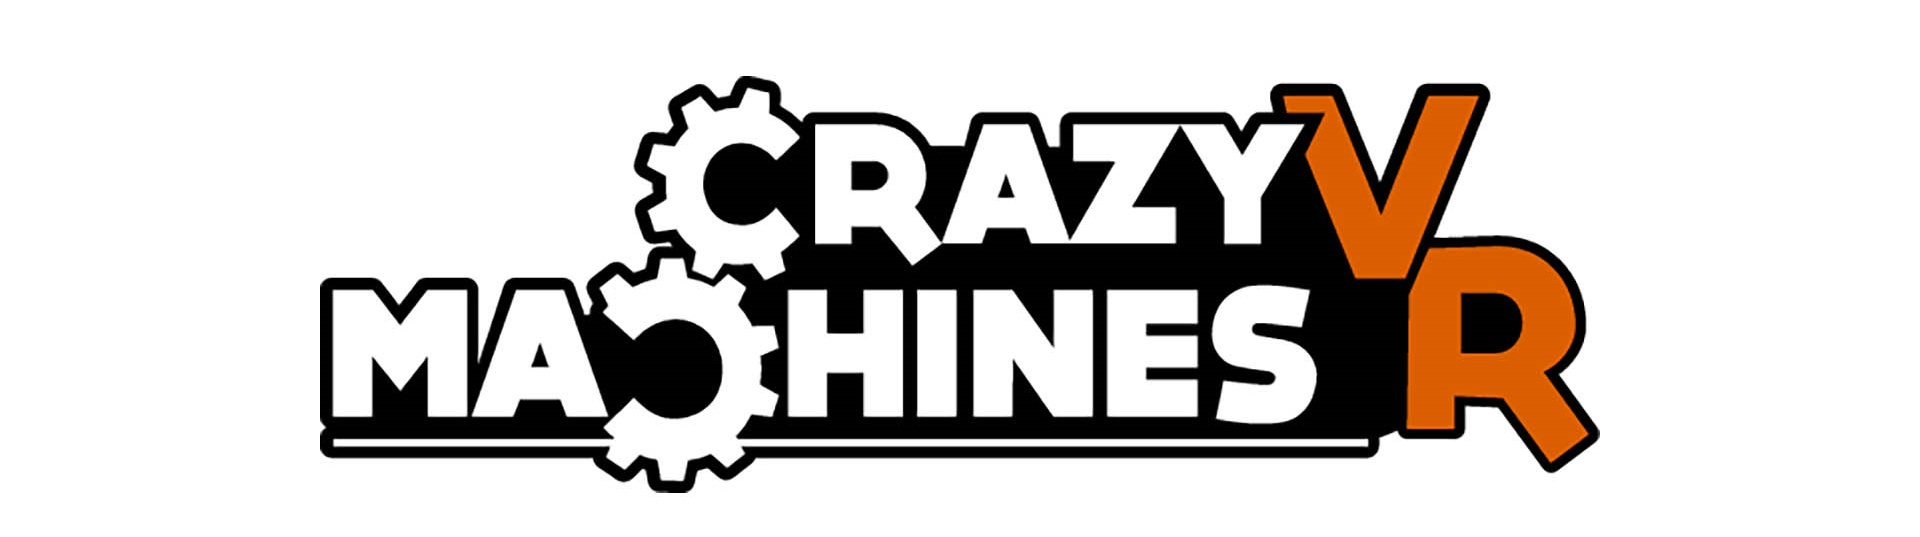 crazy-machines-vrtuuuk.jpg